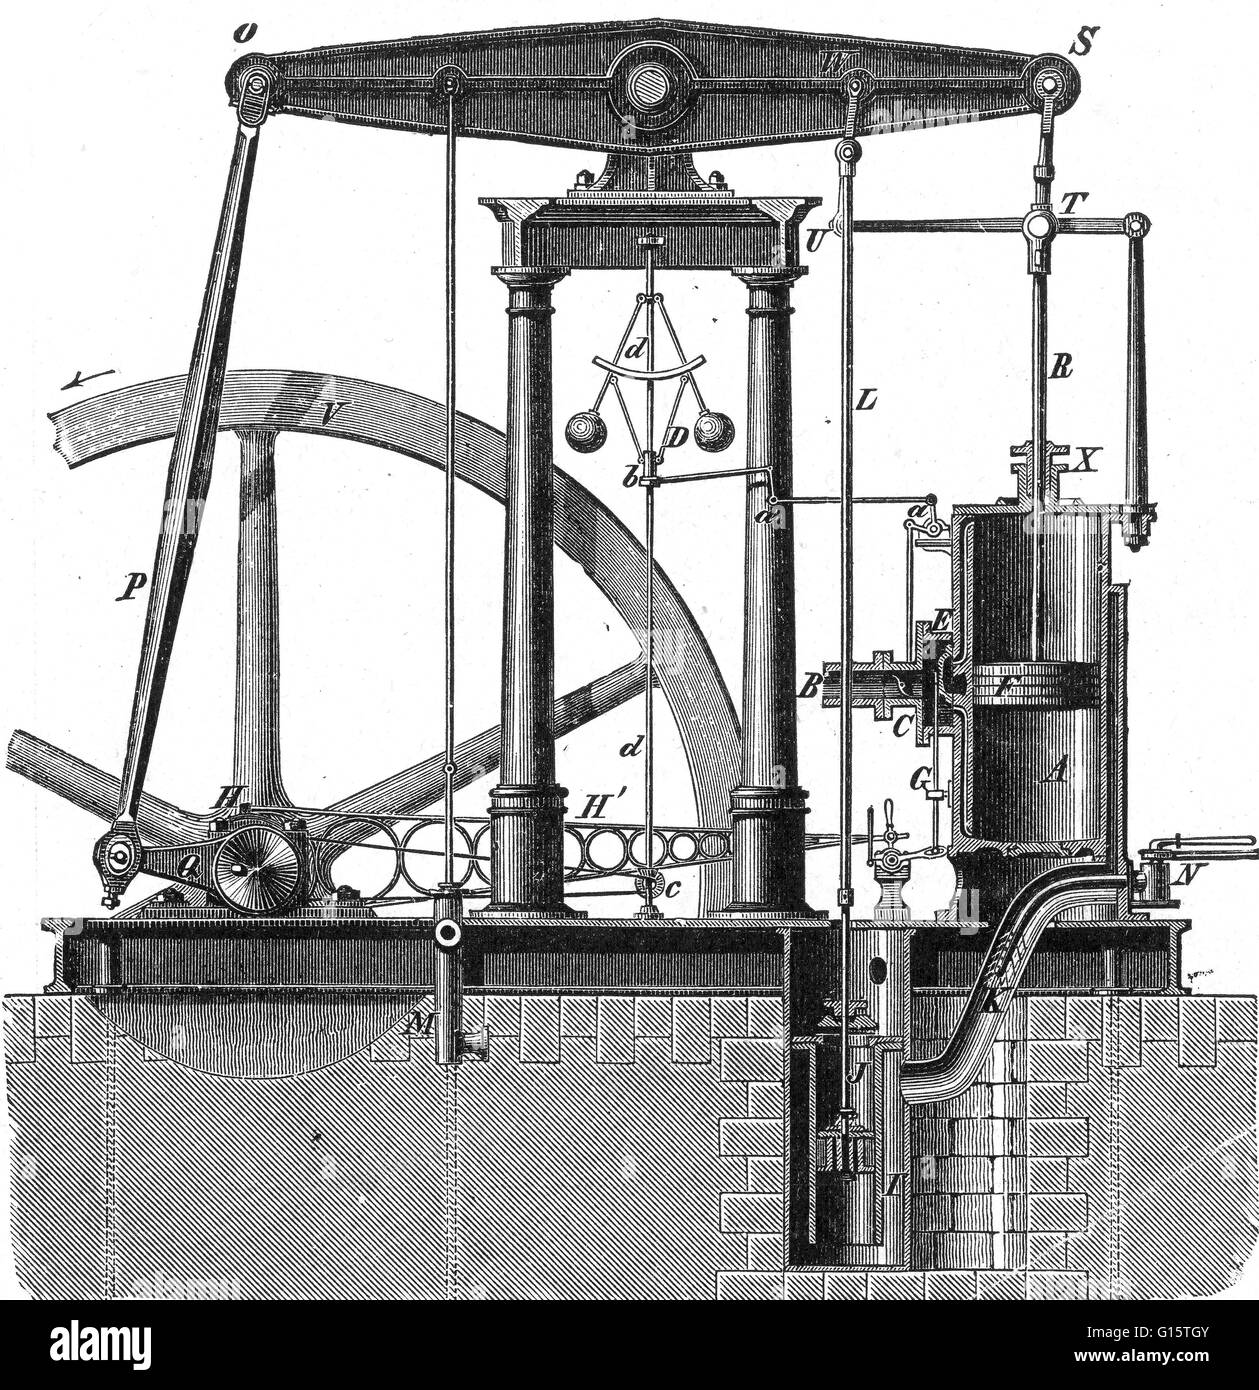 The Watts steam engine was the first type of steam engine to make use of steam at a pressure just above atmospheric - Stock Image